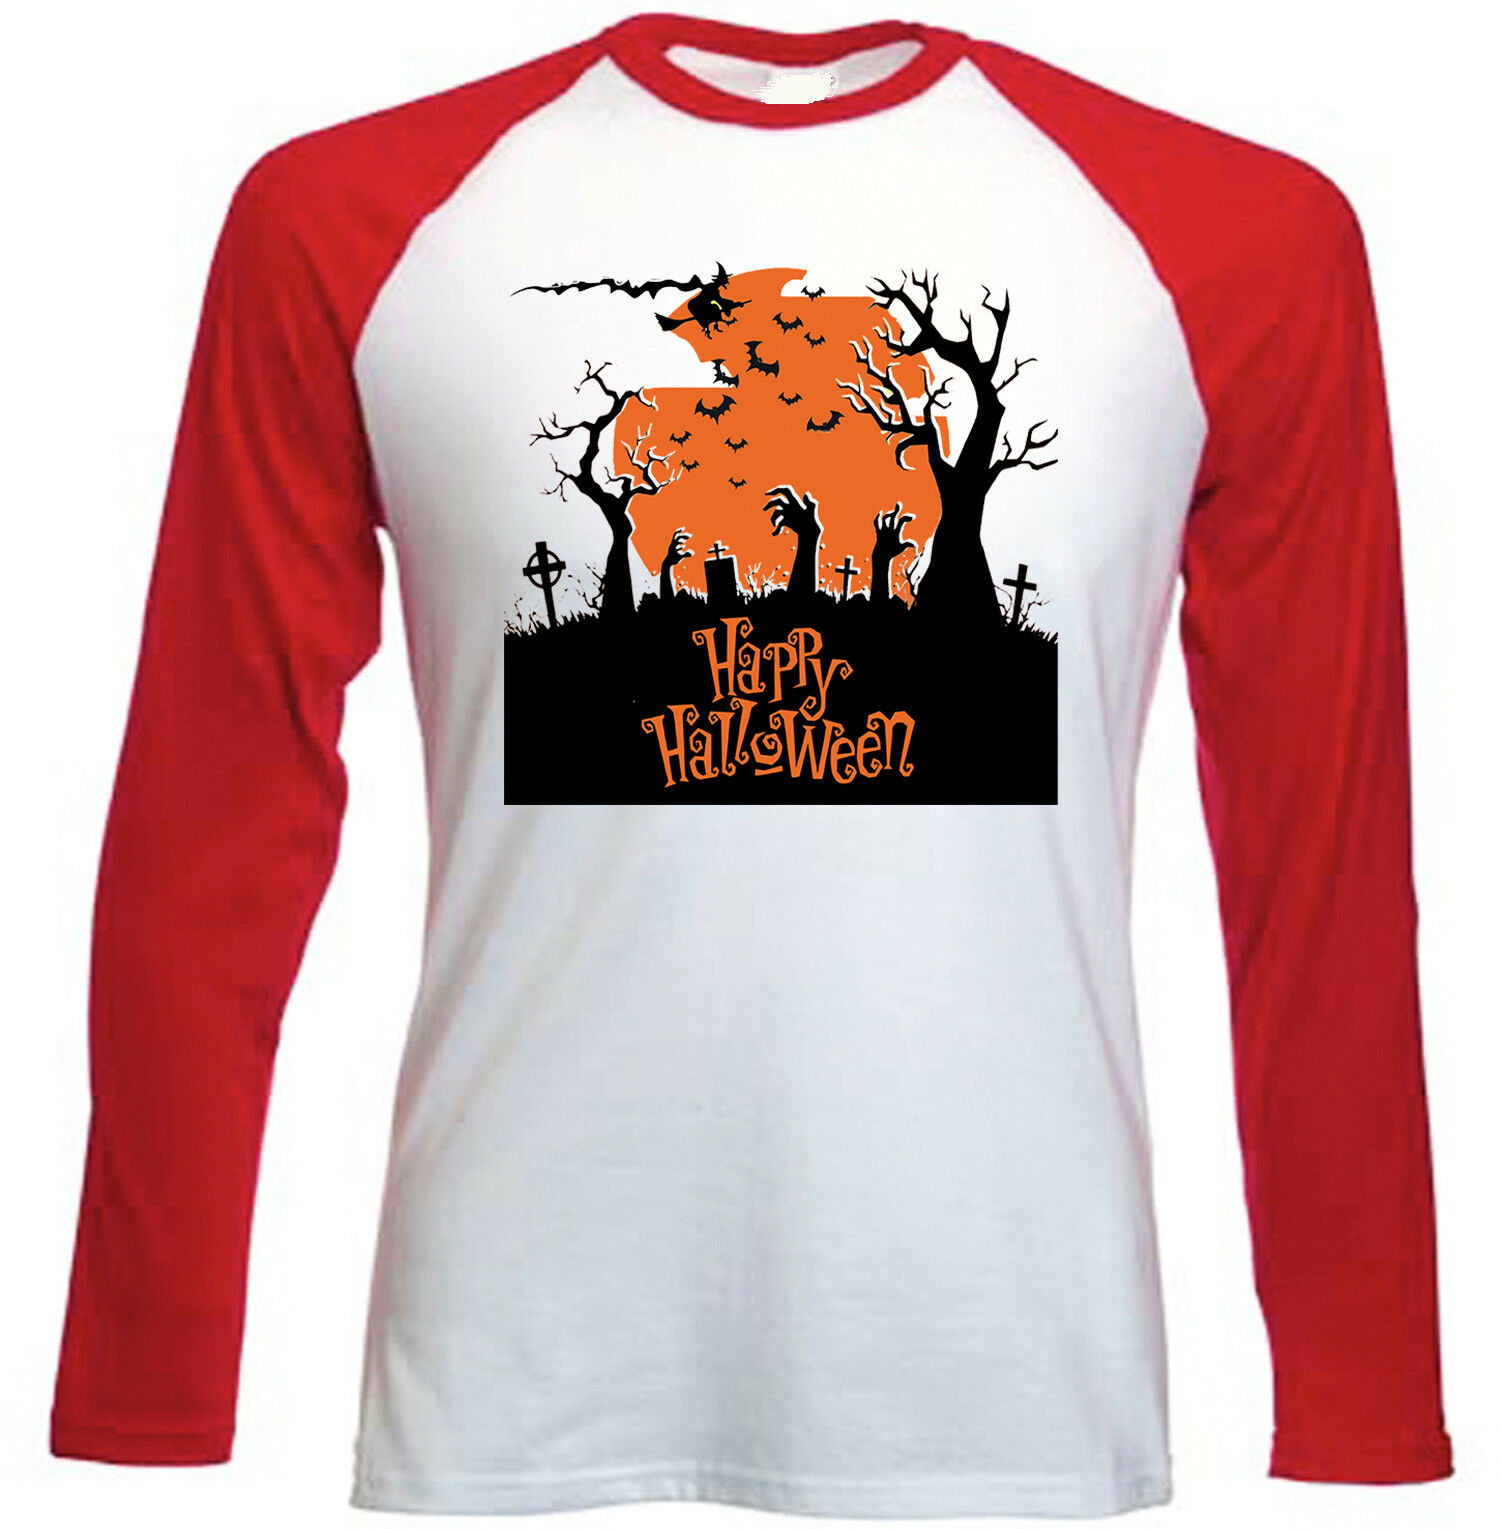 HALLOWEEN SCARY - NEW RED SLEEVED TSHIRT